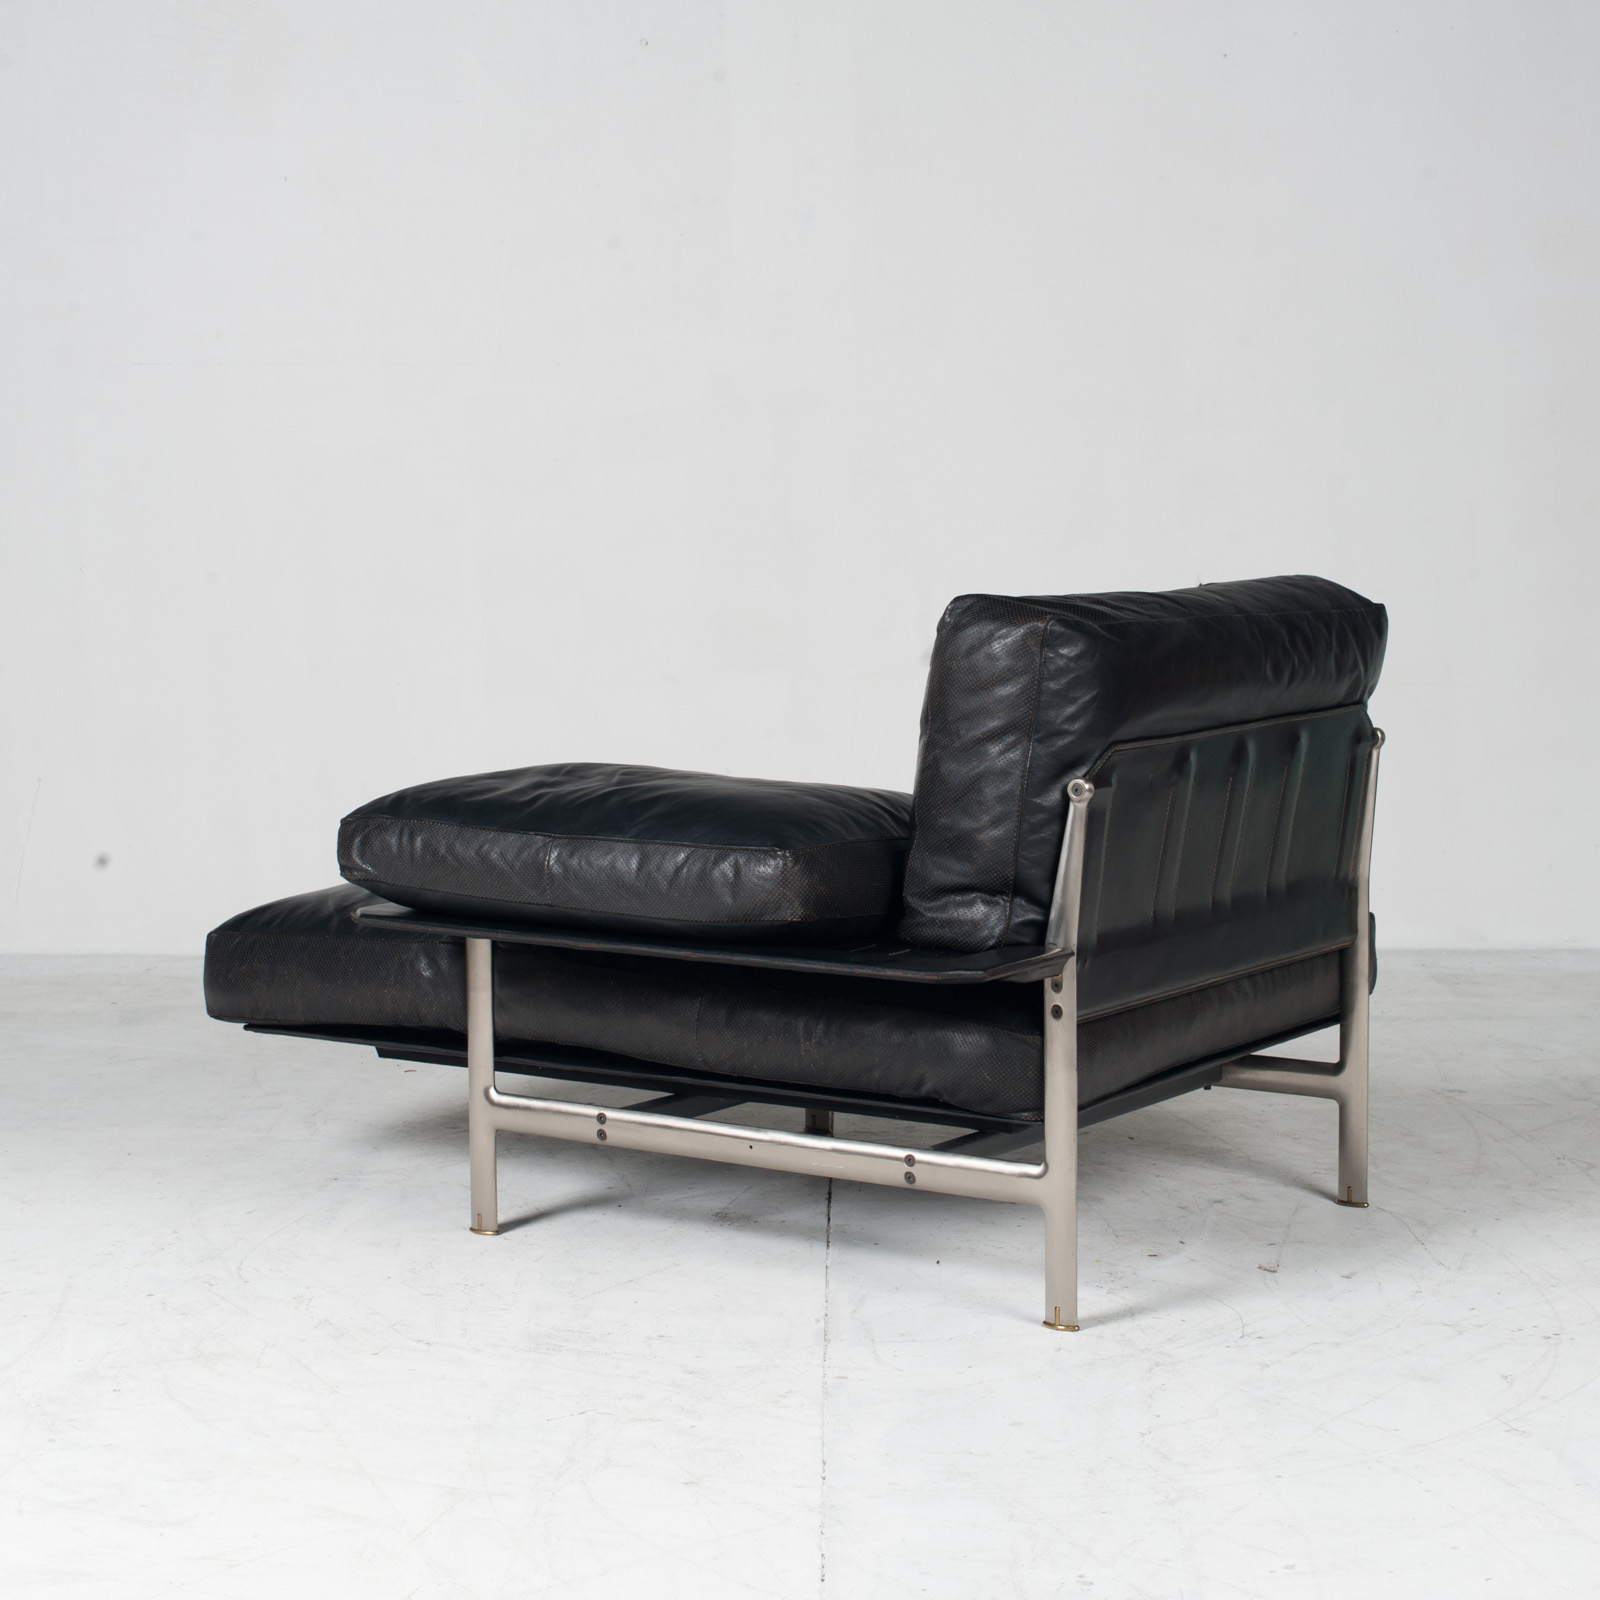 Model Diesis Chaise Lounge For B&b Italia By Antonio Citterio In Black Leather 1970s Italy 12